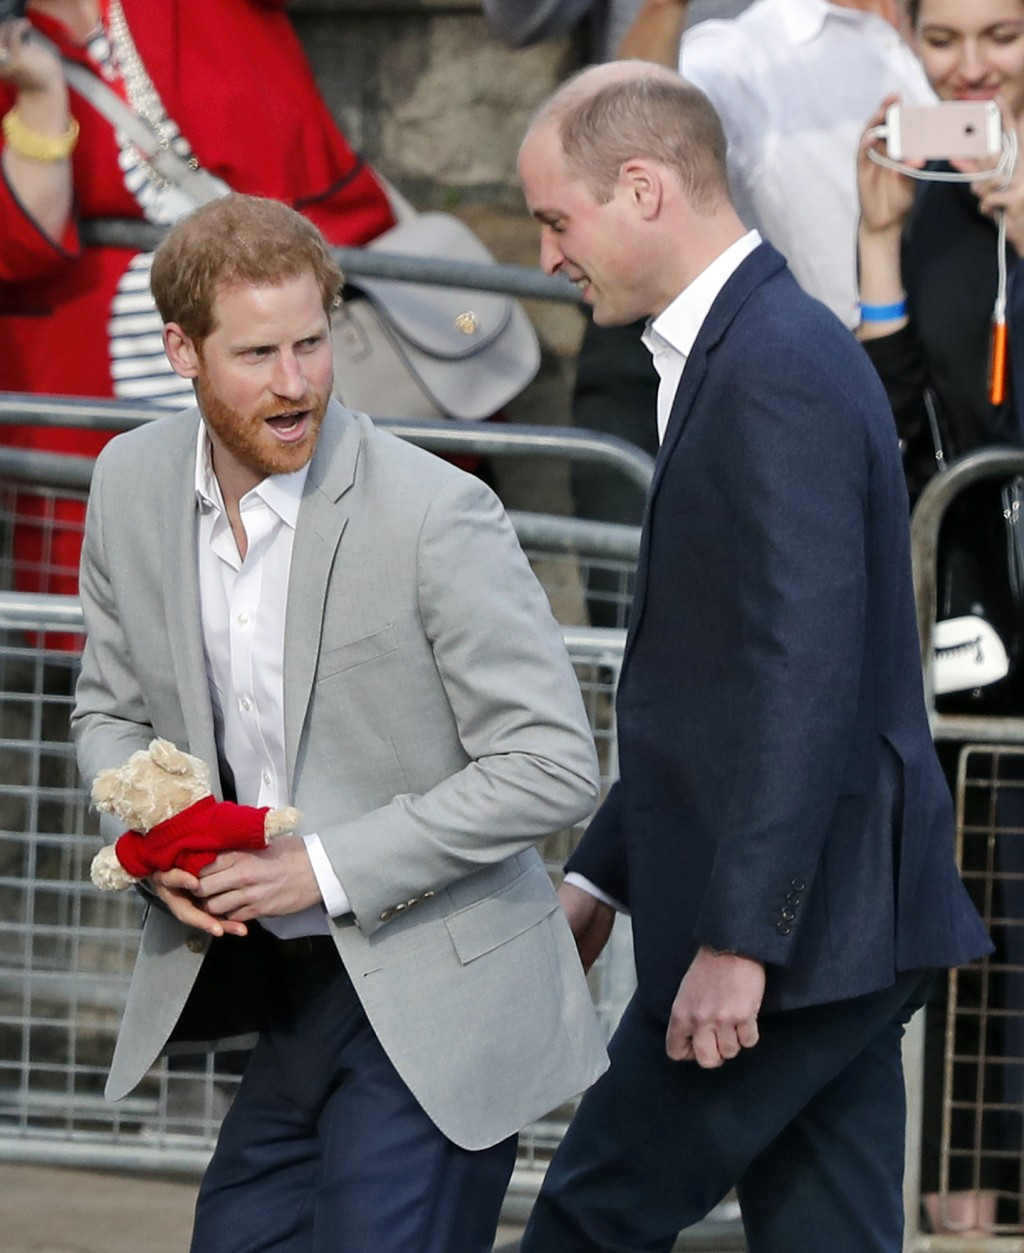 Britain's Prince William, right, and Prince Harry return to Windsor Castle after greeting crowds in Windsor, near London, England, Friday, May 18, 201...